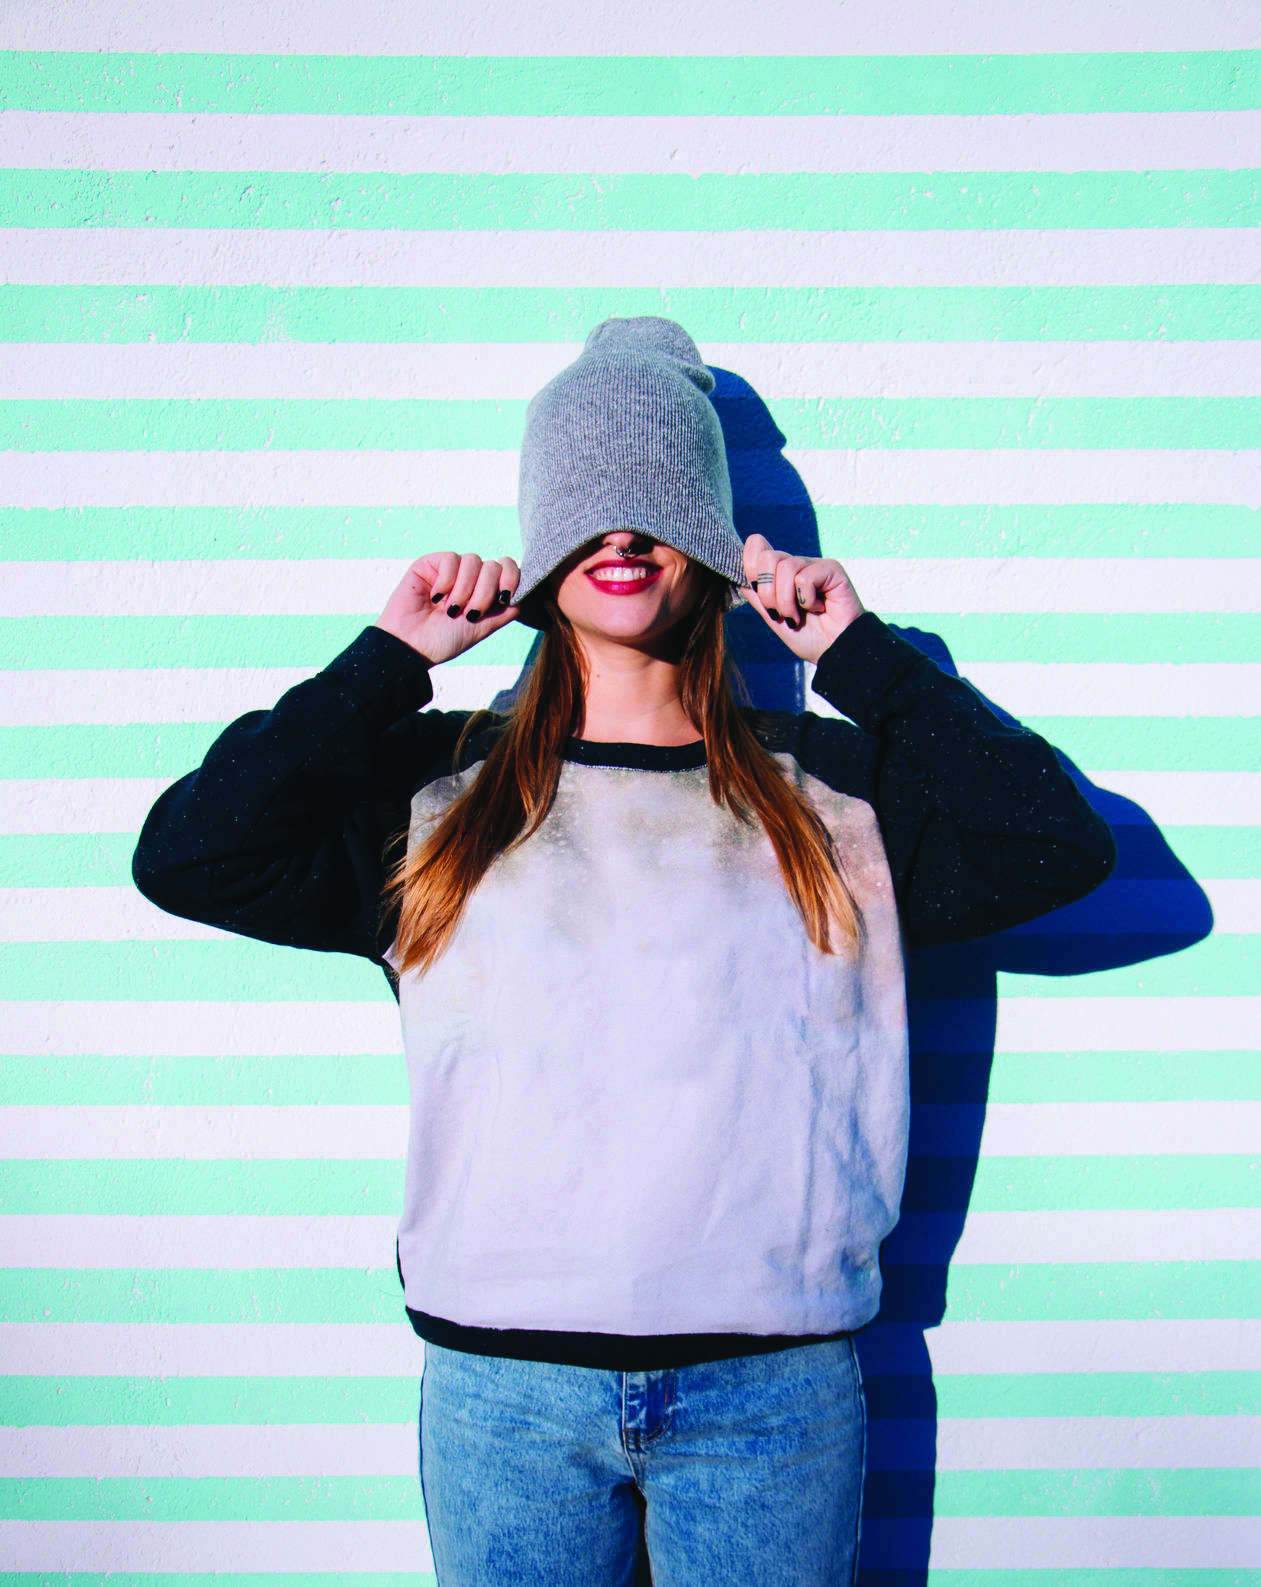 A girl against a striped wall pulls her beanie over her head and smiles.